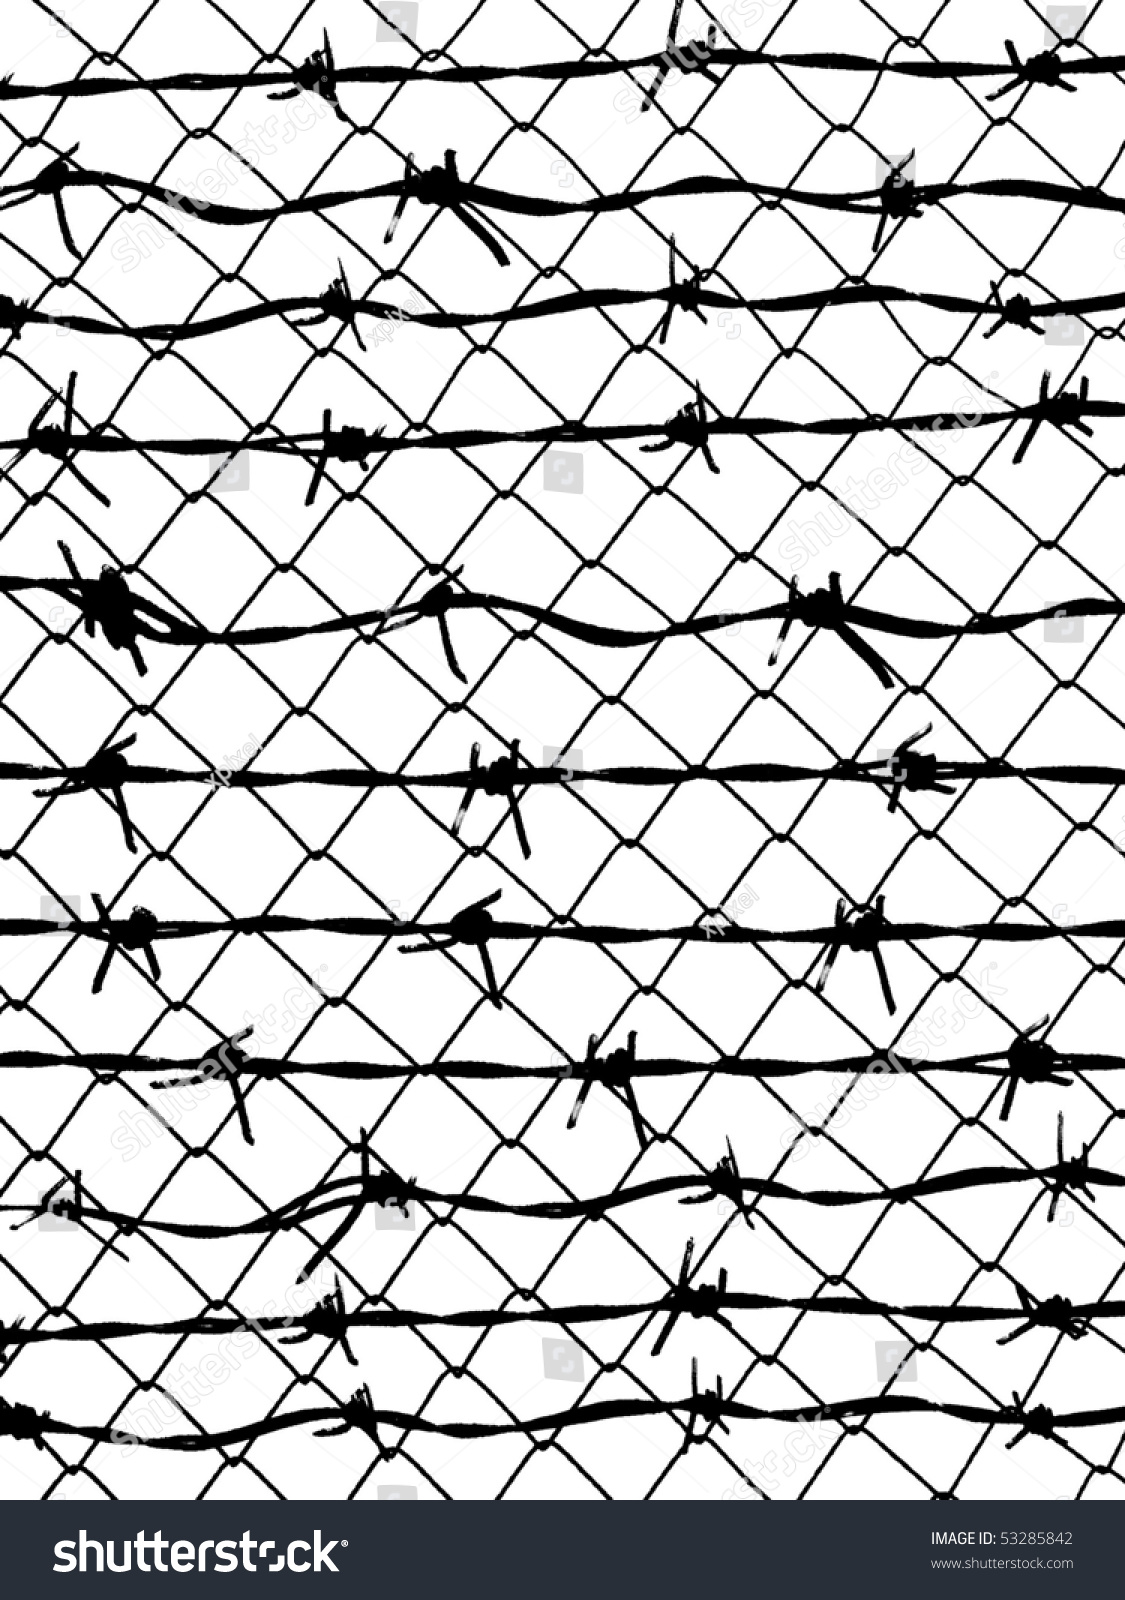 Posterize Barbed Wire Fence Protection Isolated Stock Illustration ...